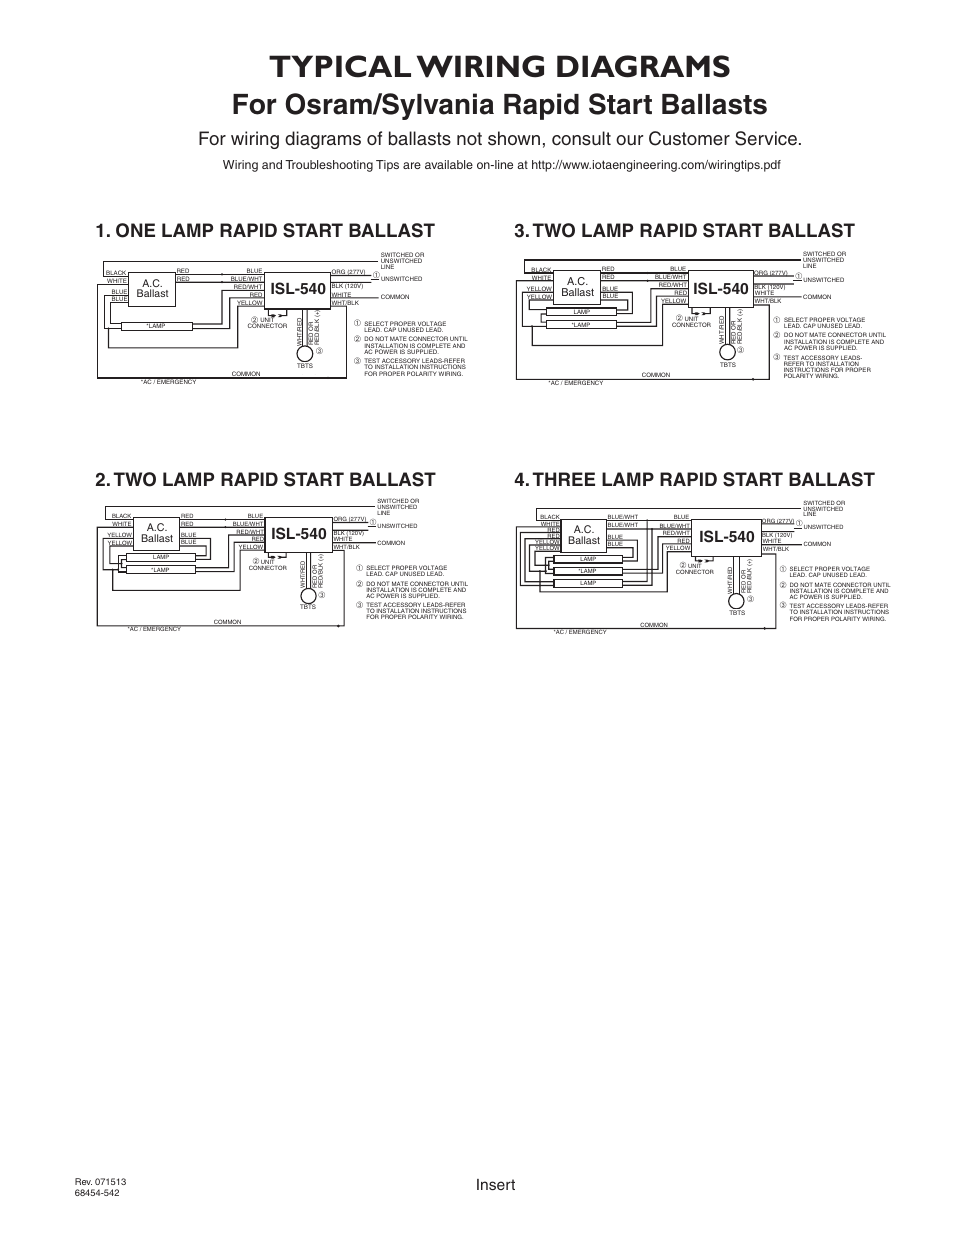 Iota Emergency Ballast Wiring Diagram 1 Lamp To Pin On Pinterest For Two And 018145450 Beautiful